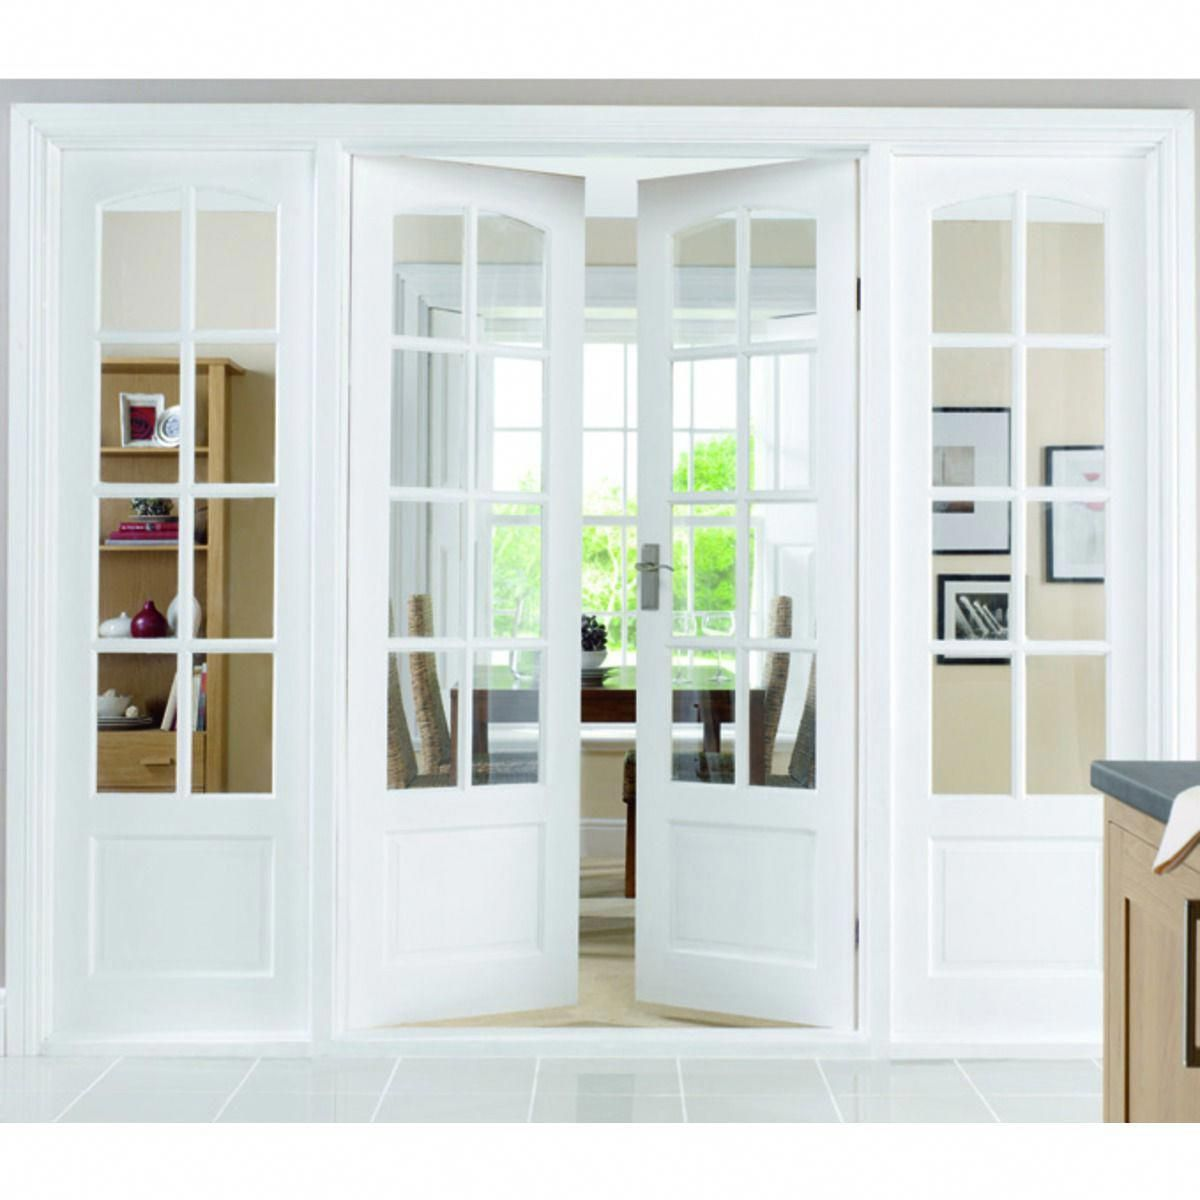 Solid Wood Interior Doors Wooden Sliding Doors 10 Panel French Door 20190807 Interior Double French Doors French Doors Interior Glass Doors Interior